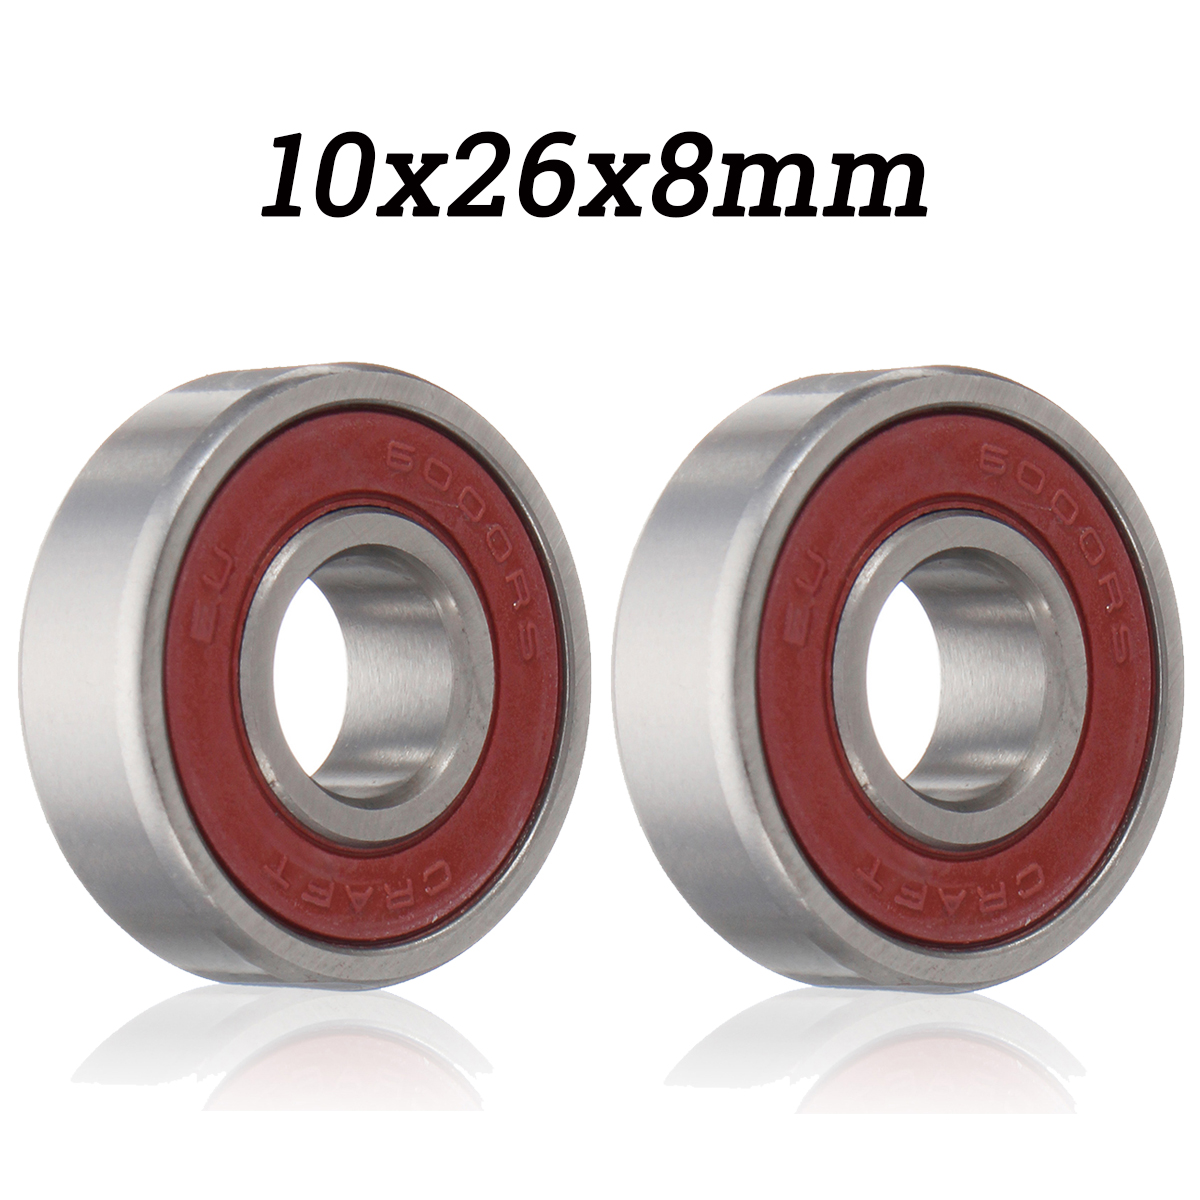 6000 2RS/6000 RS Ball Bearing 10x26x8mm High Quality Red Sealed Rubber Shields Deep Groove Ball Bearing Stainless steel 5pcs lot 6000 2rs 6000 rs 10x26x8mm rubber sealed deep groove ball bearing miniature bearing